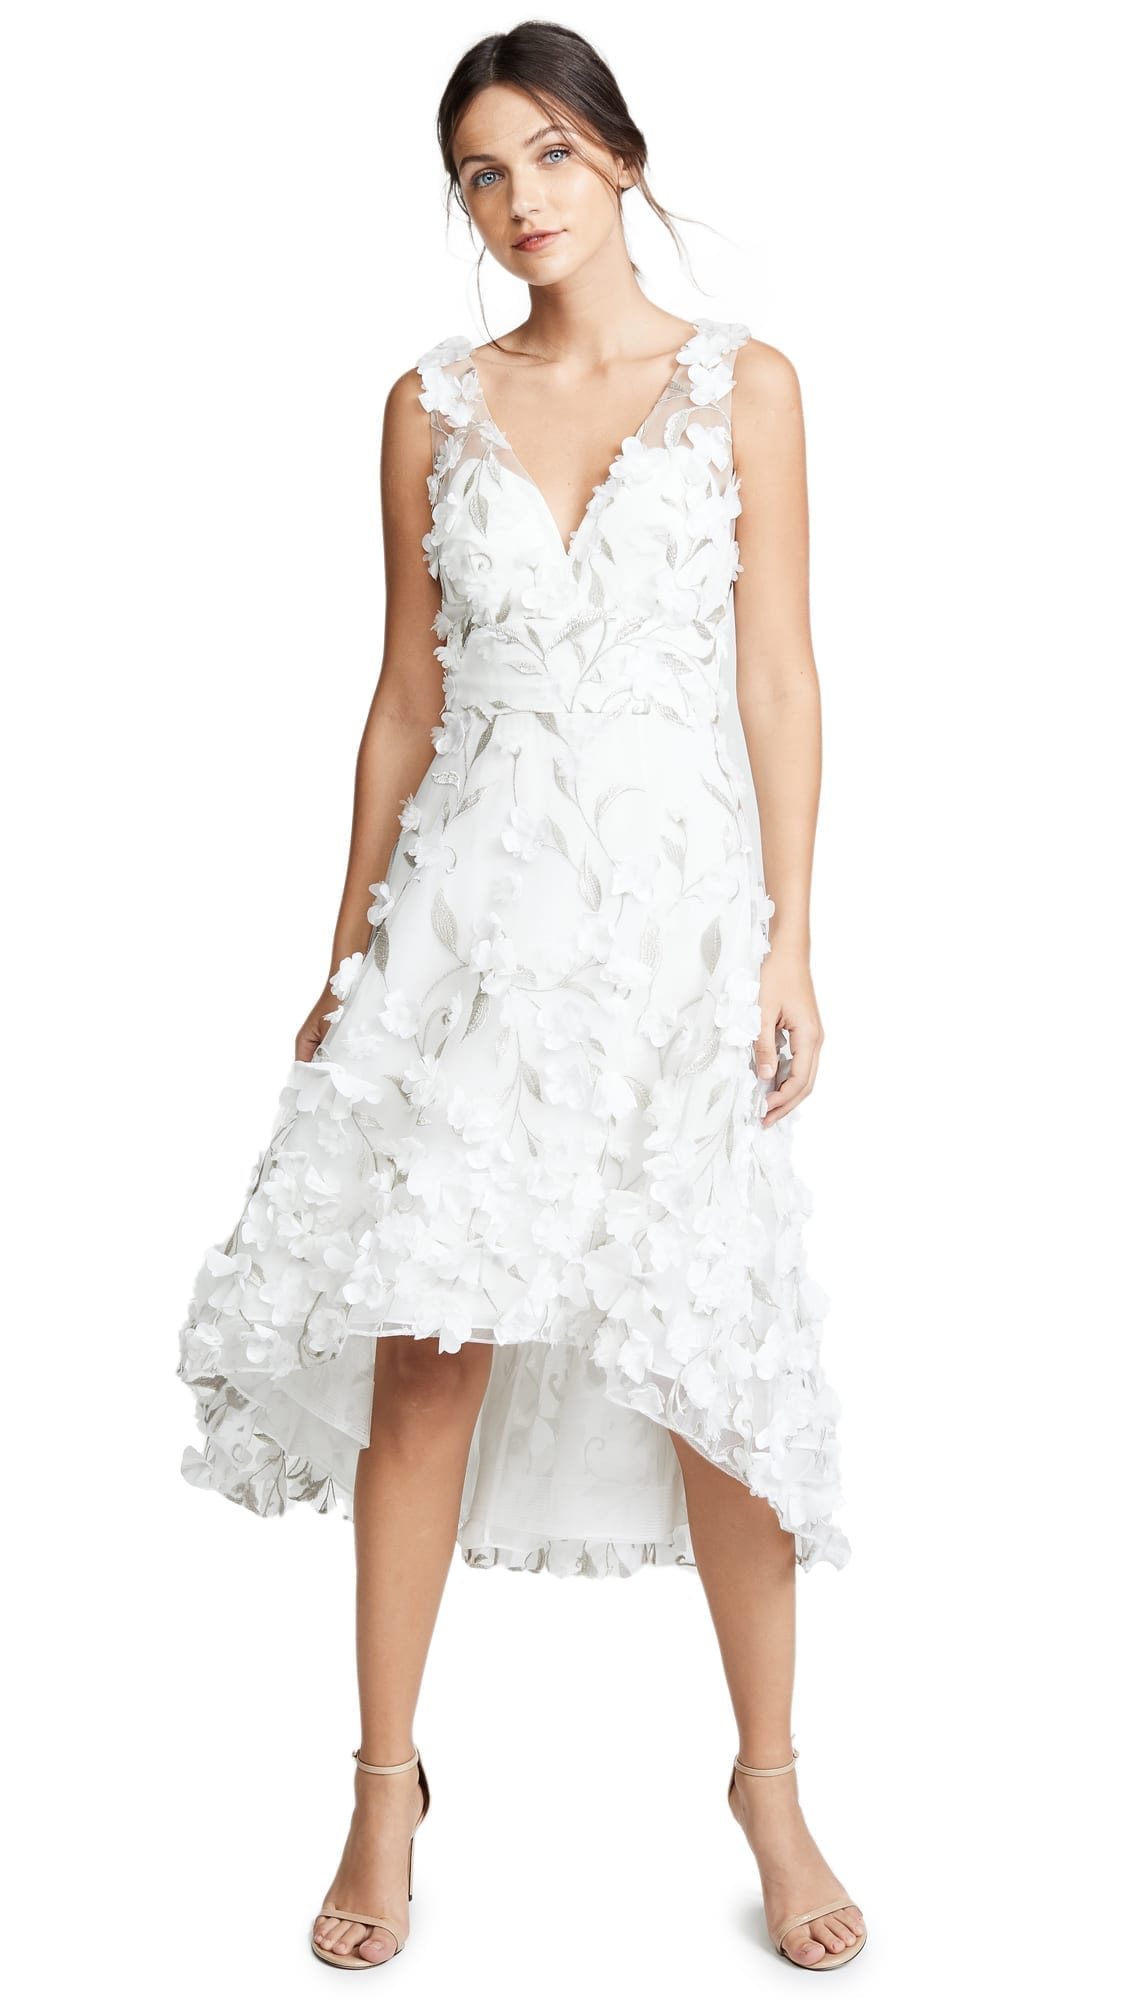 f19be5d788 MARCHESA NOTTE Flower Petals High Low Cocktail Ivory Dress - We ...